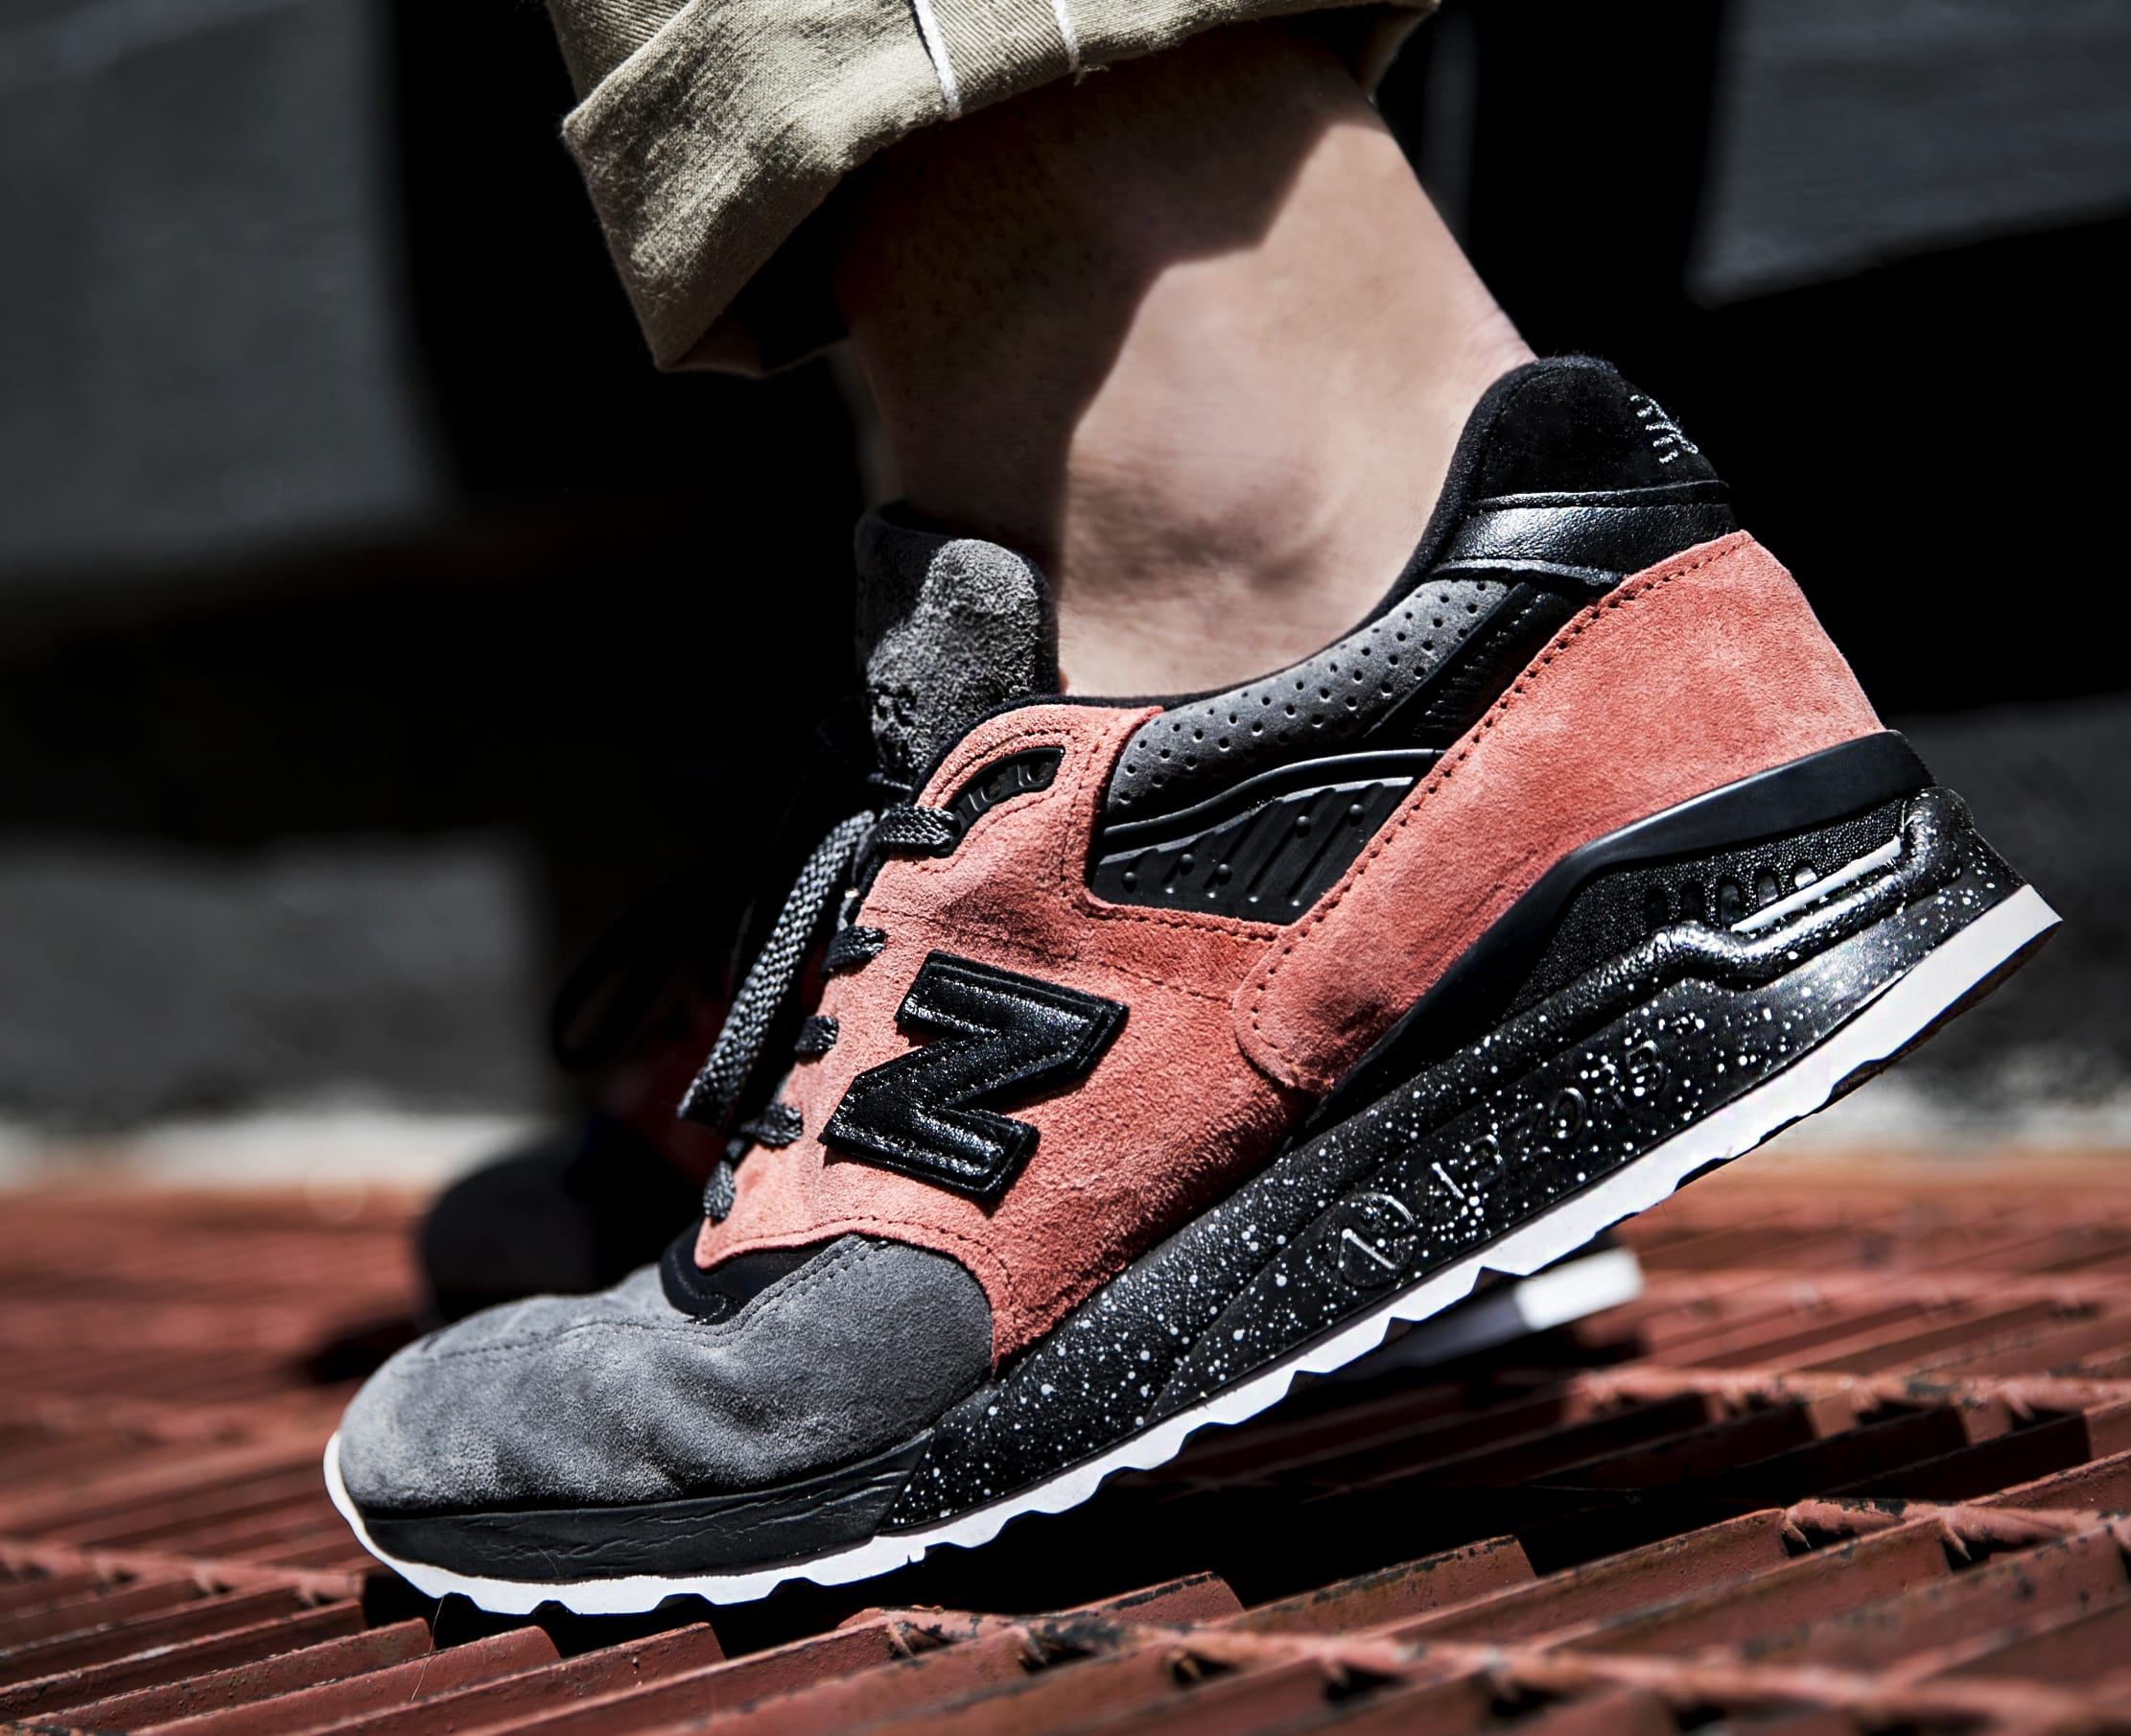 Todd Snyder x New Balance 998 NB1 'Sunset Pink' (On-Foot)